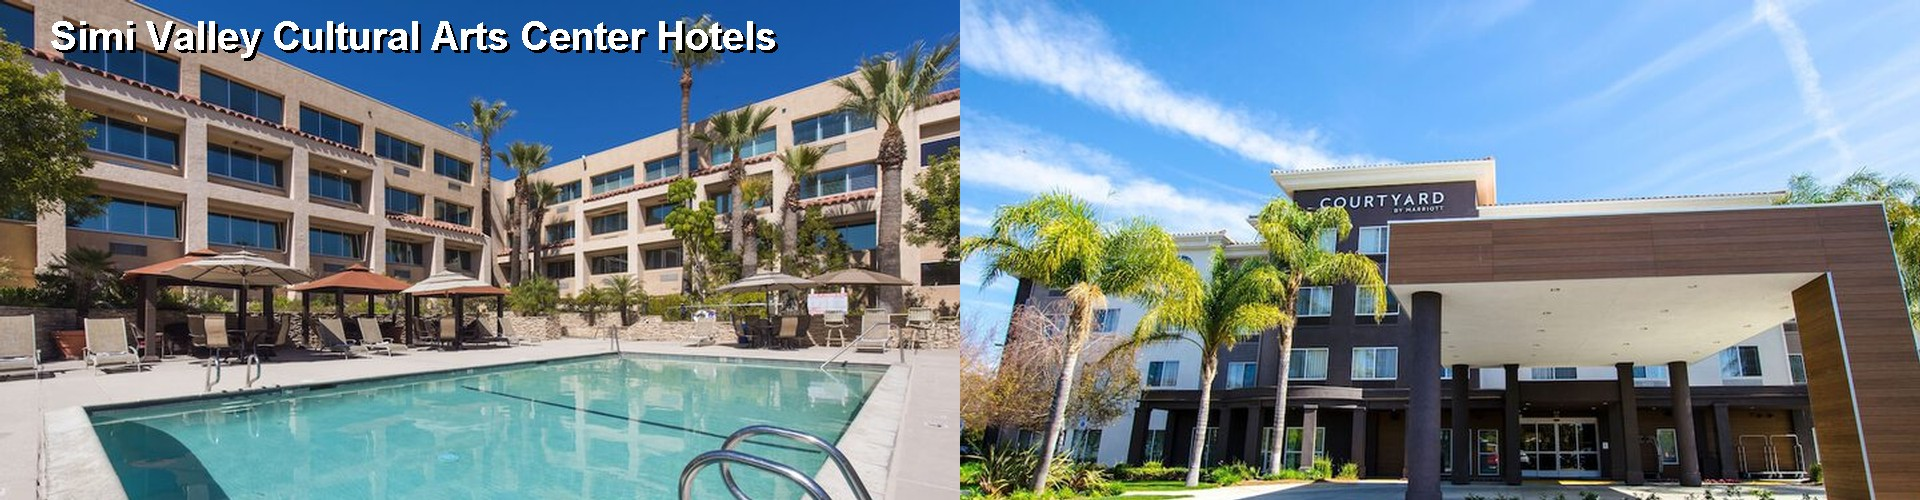 5 Best Hotels near Simi Valley Cultural Arts Center